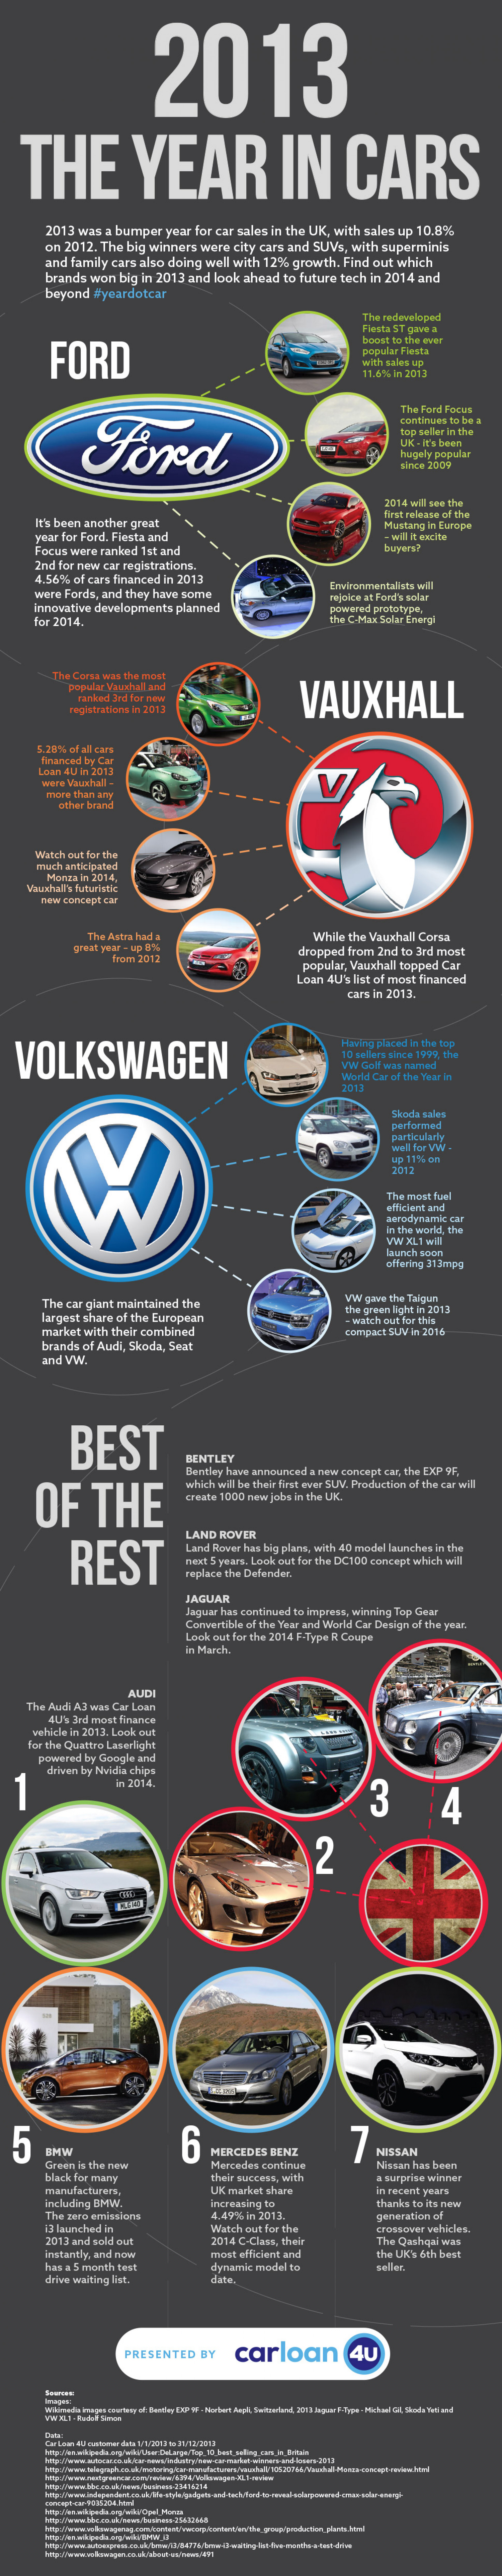 The Year in Cars 2013  Infographic